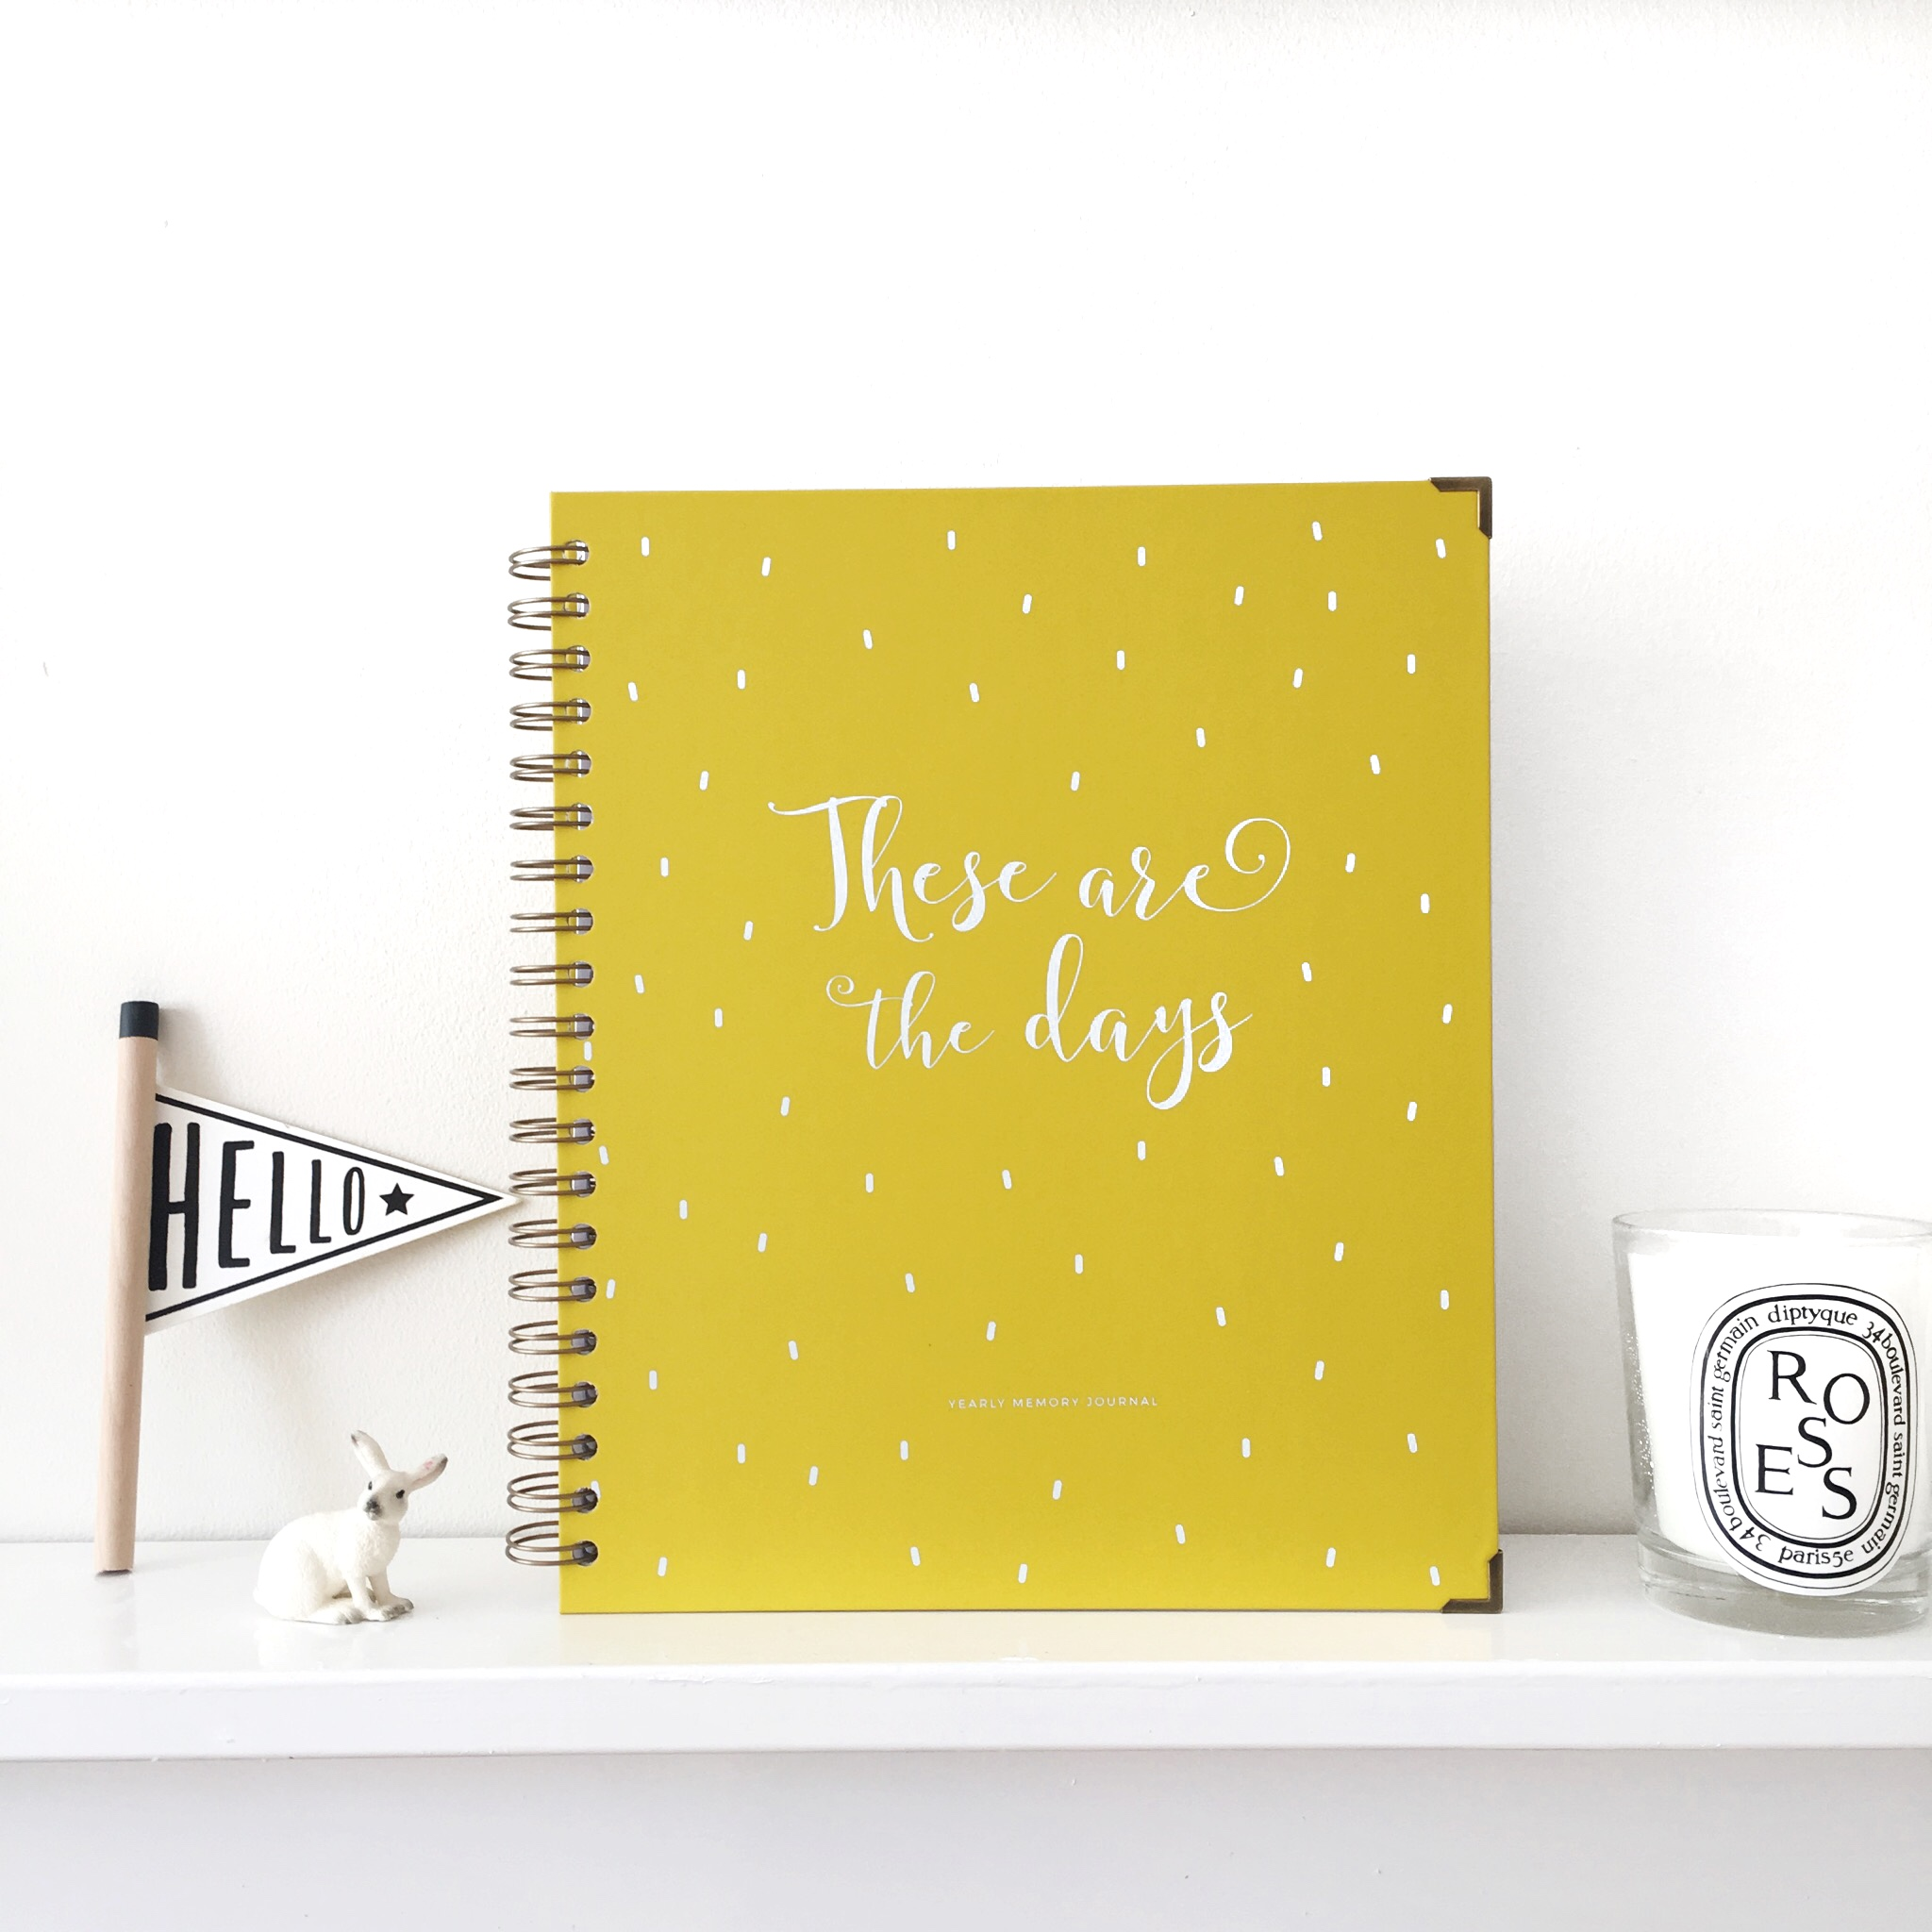 Yearly Memory Journal   : £30  A beautiful 52 week journal to document a full year of baby's life. This will become a treasured keepsake.   - Mama Journals